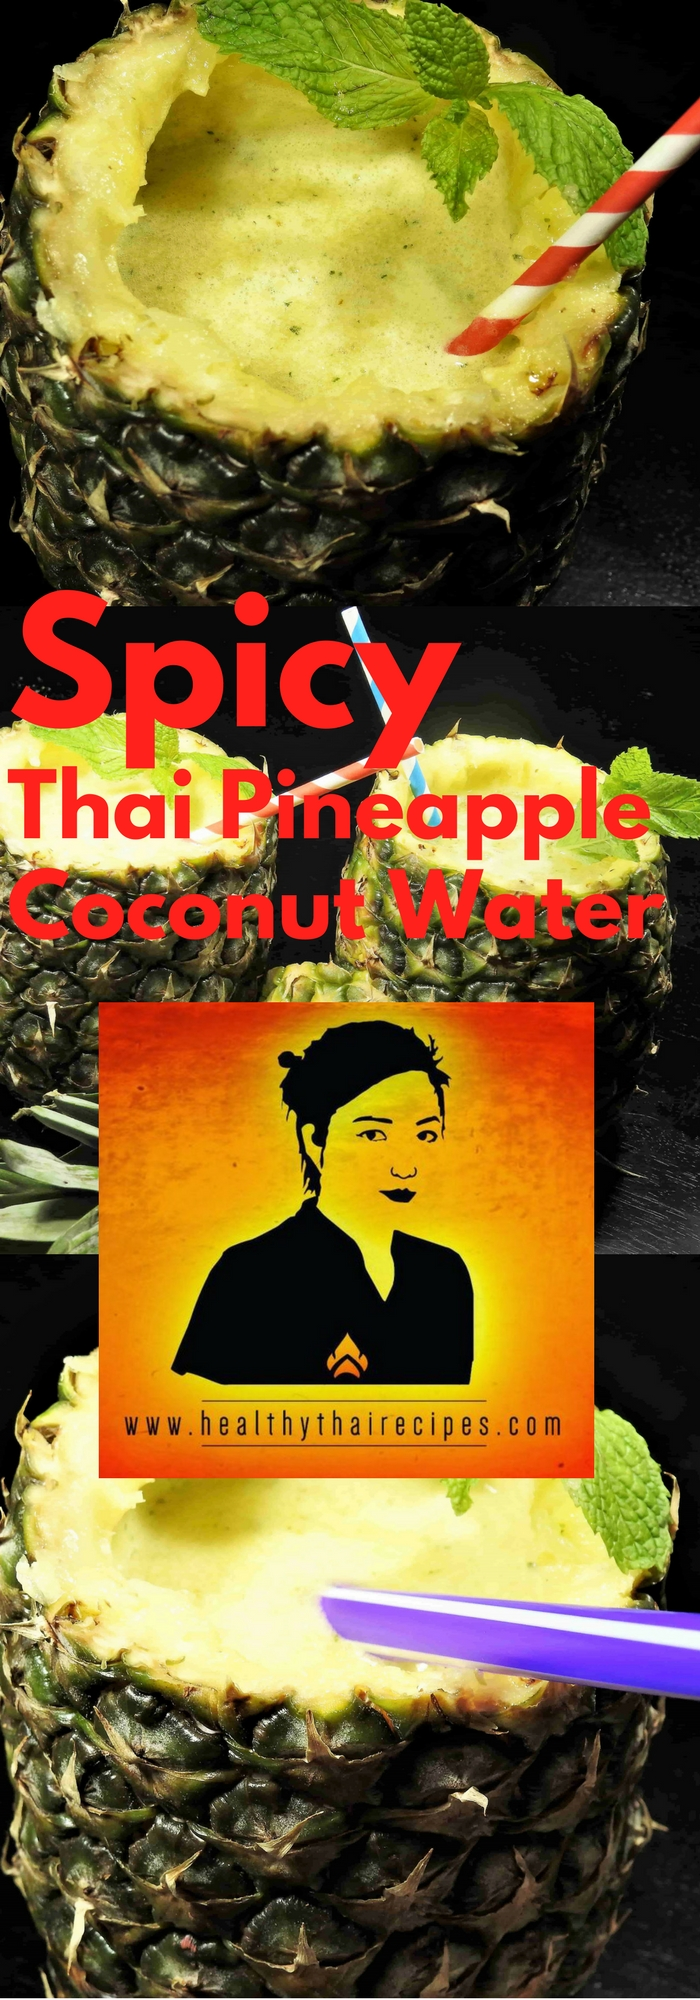 Spicy Thai Pineapple Coconut Water